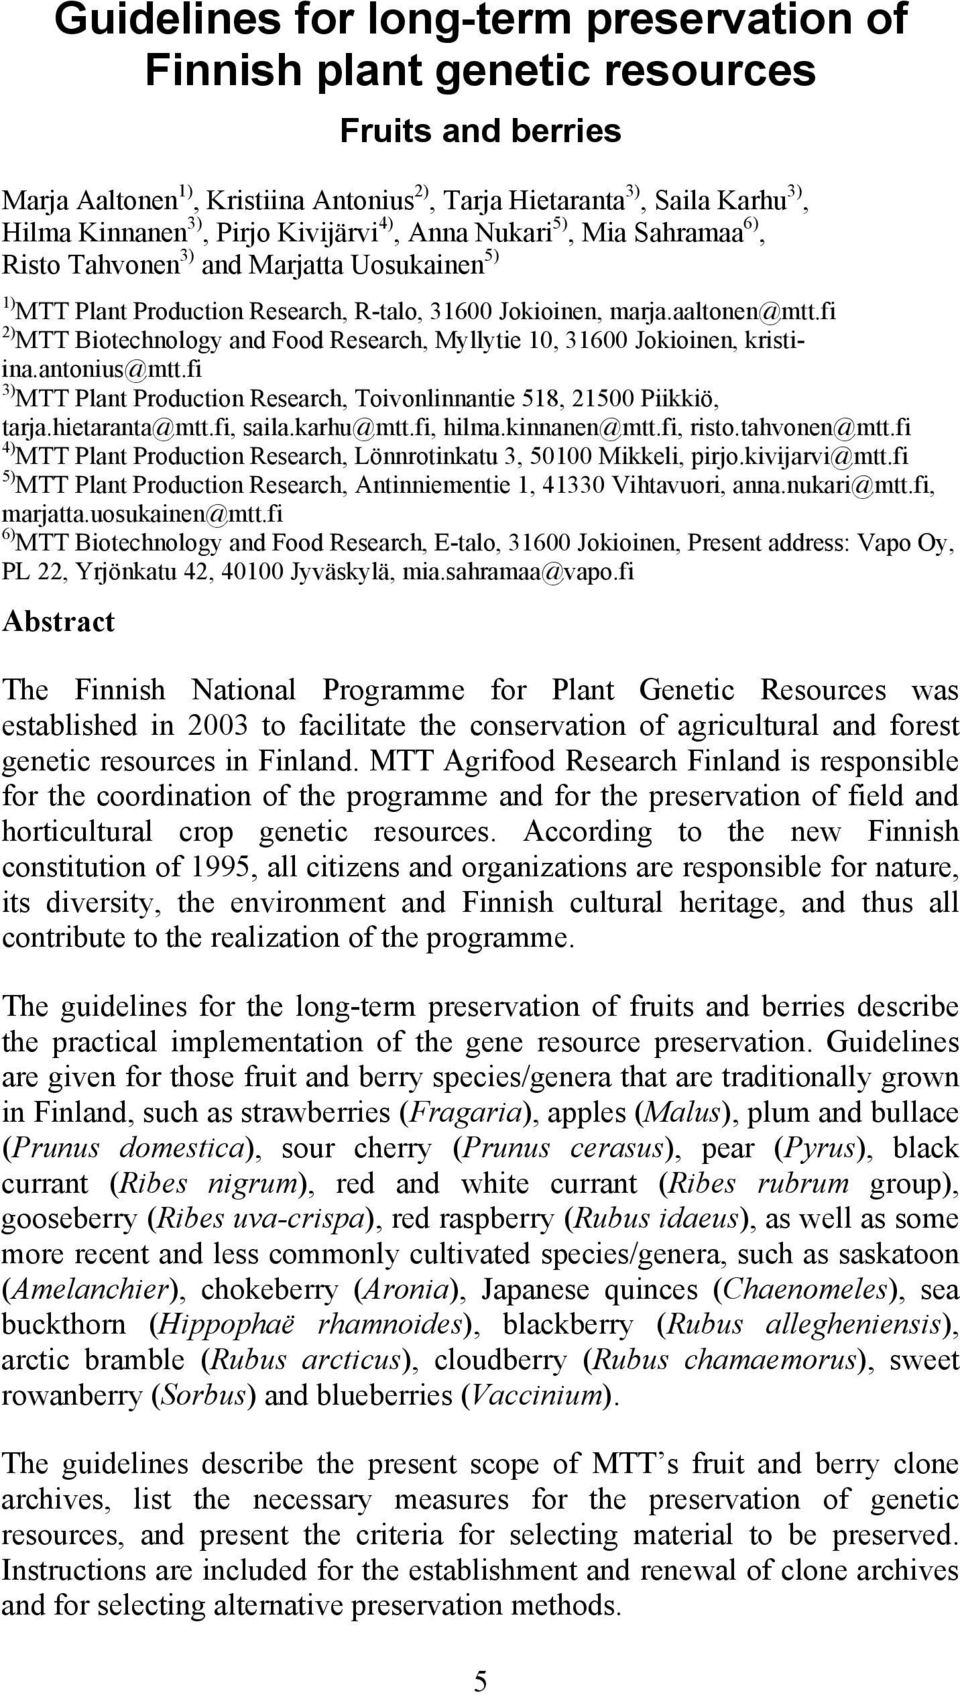 fi 2) MTT Biotechnology and Food Research, Myllytie 10, 31600 Jokioinen, kristiina.antonius@mtt.fi 3) MTT Plant Production Research, Toivonlinnantie 518, 21500 Piikkiö, tarja.hietaranta@mtt.fi, saila.